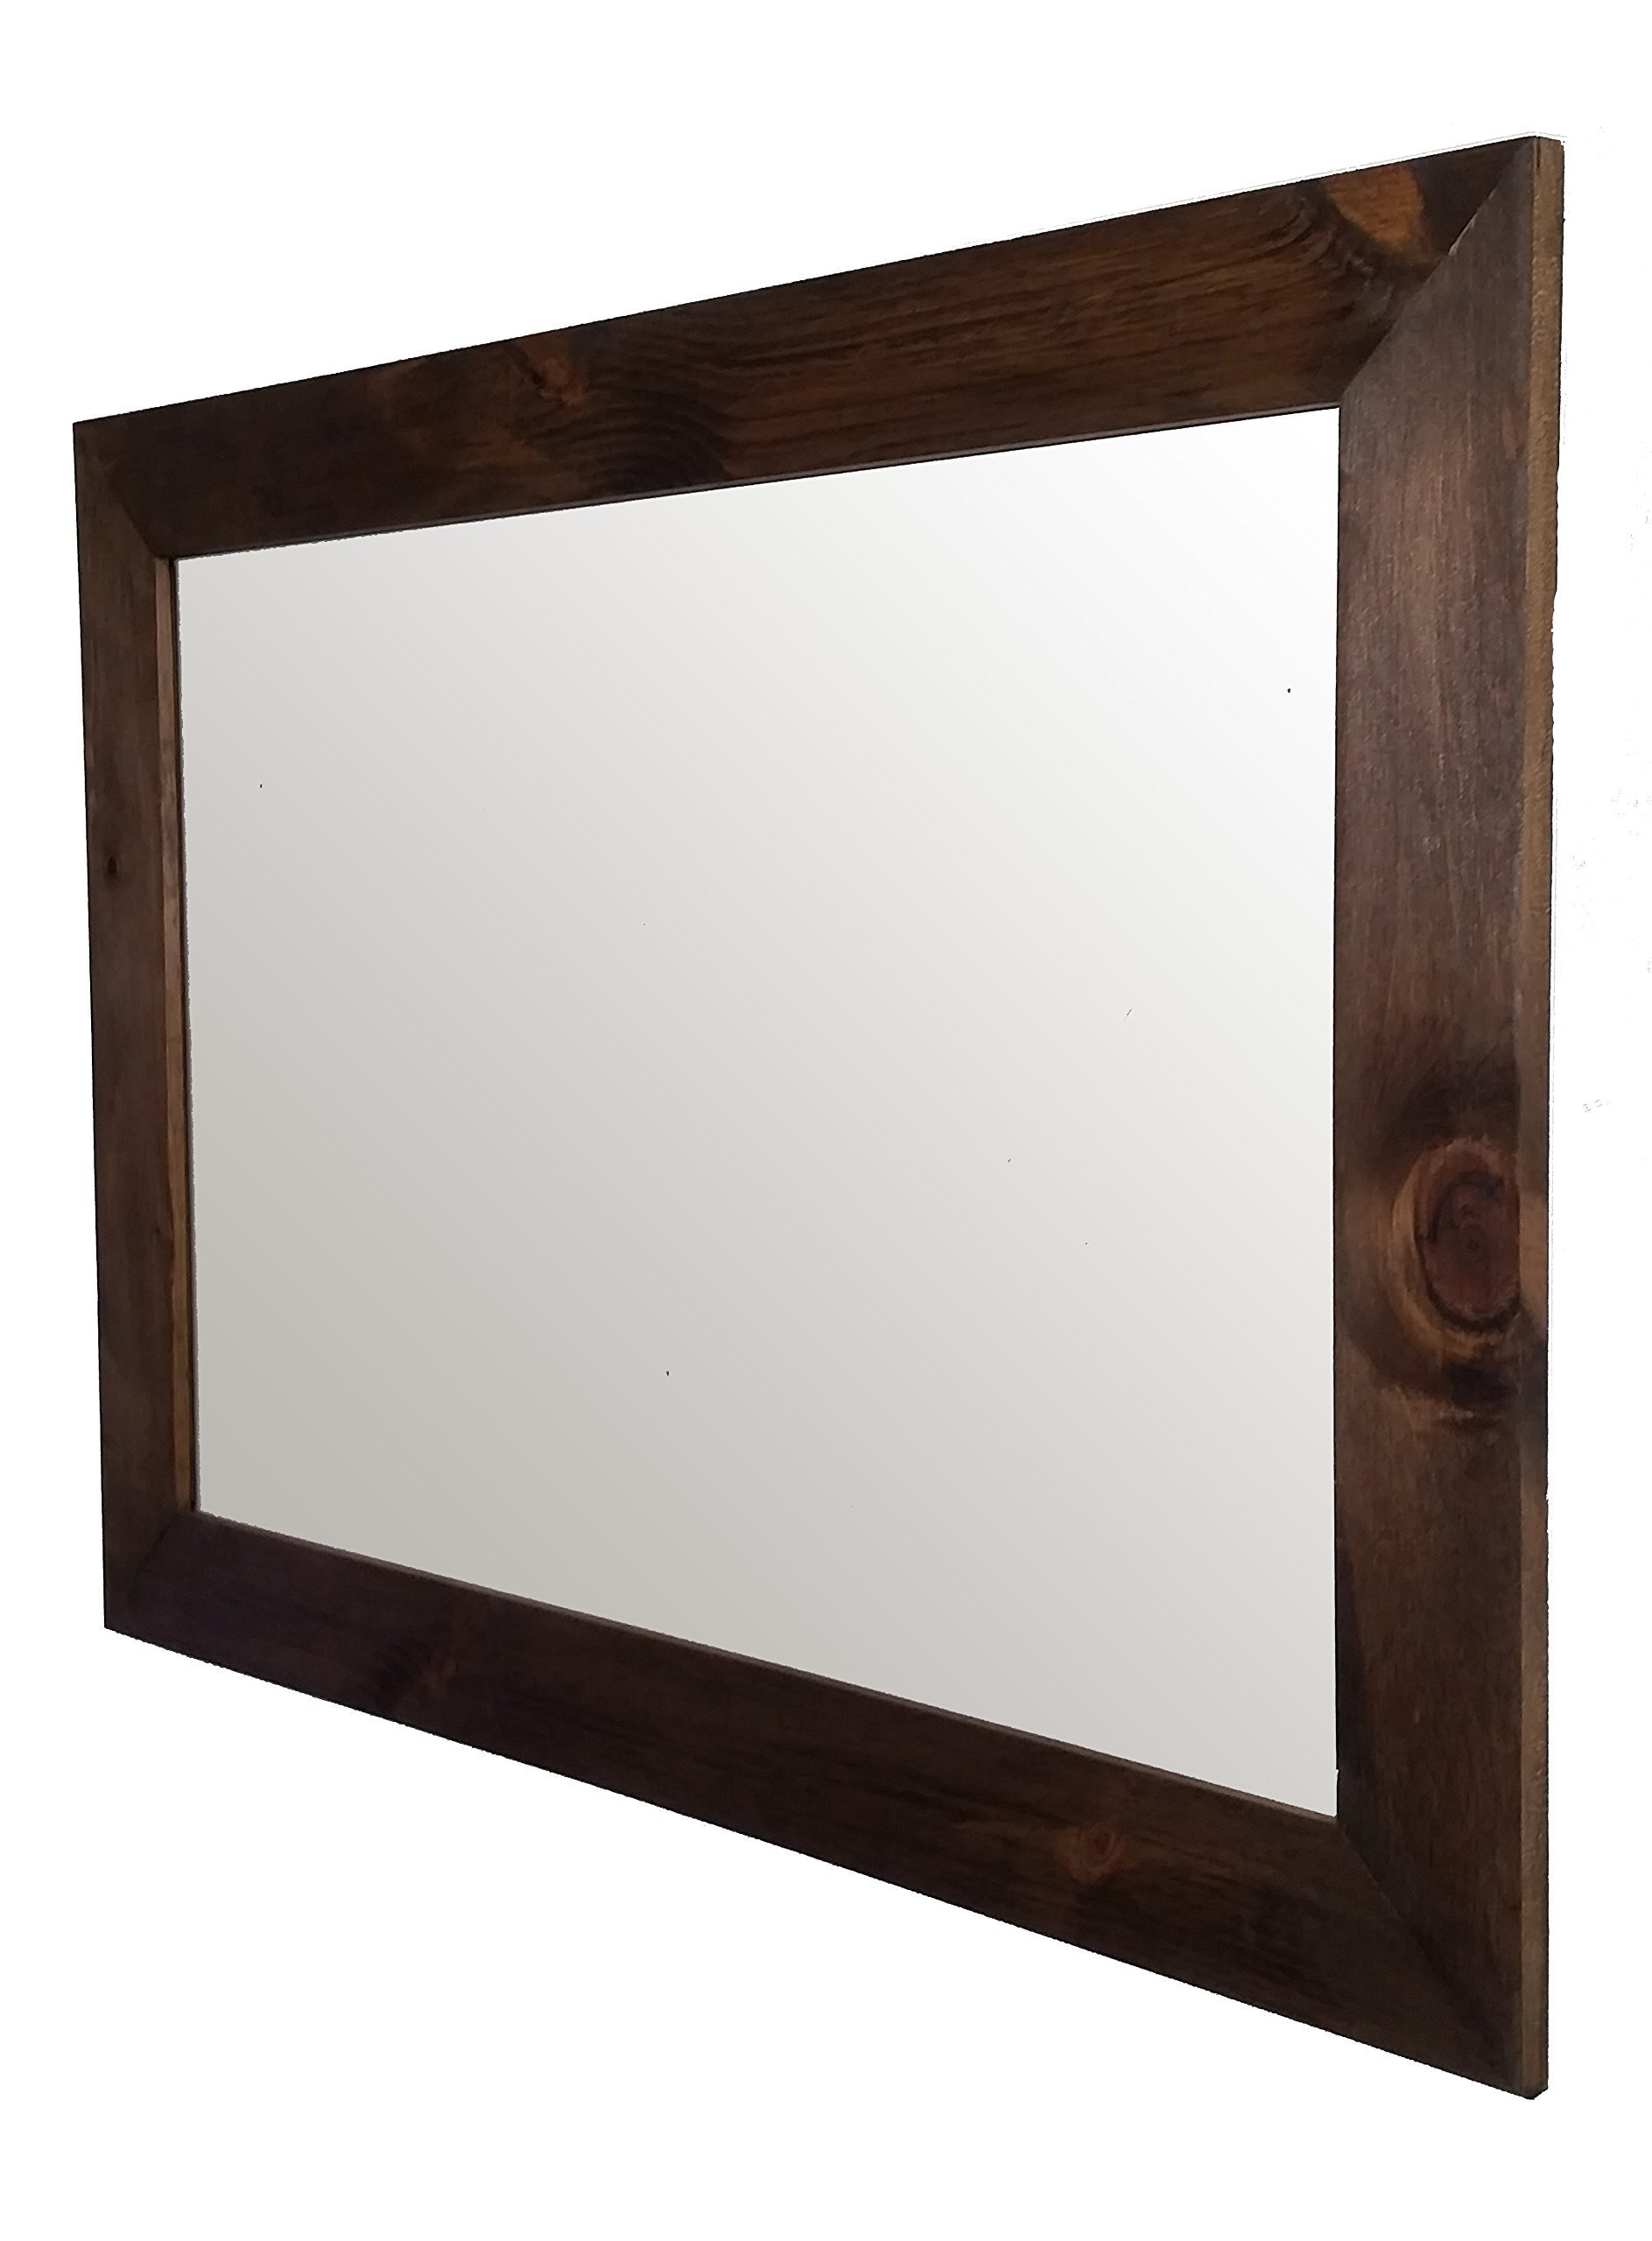 Shiplap Mirror 42 x 30 Horizontal Provincial Stain Reclaimed Wood Mirror - Large Wall Mirror - Rustic Modern Home - Home Decor - Mirror - Housewares - Woodwork - Frame by Renewed Decor